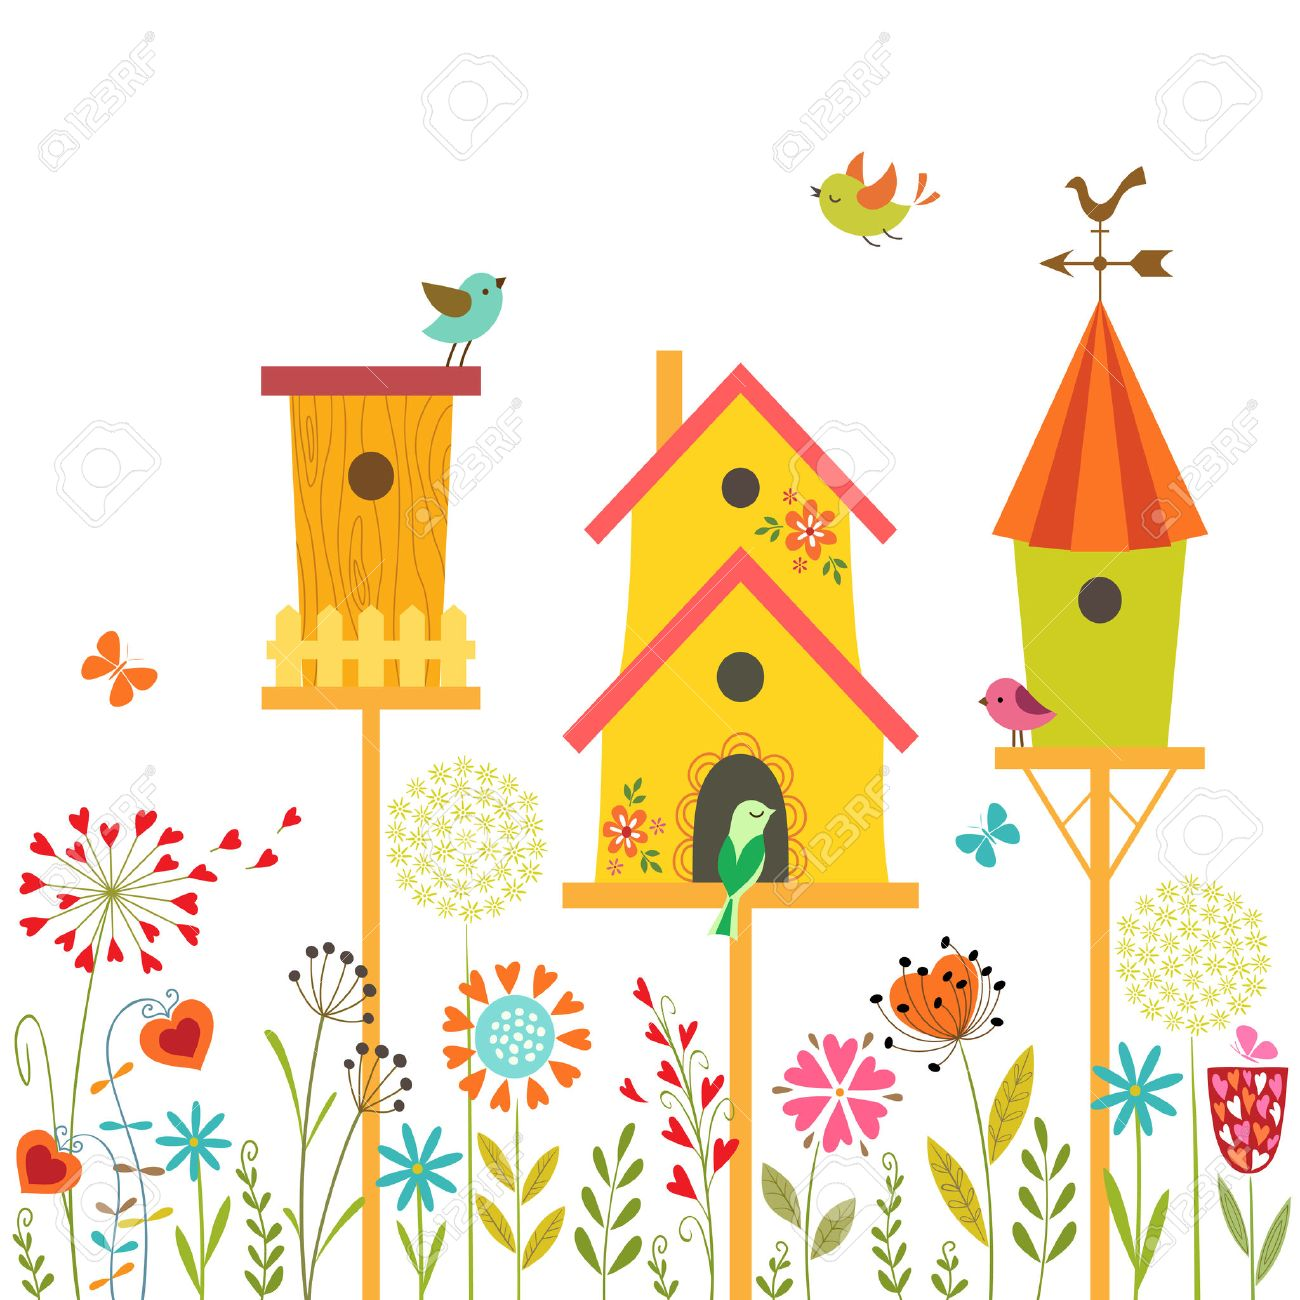 Cute illustration with bird houses, hand drawn flowers and place for text - 27715133